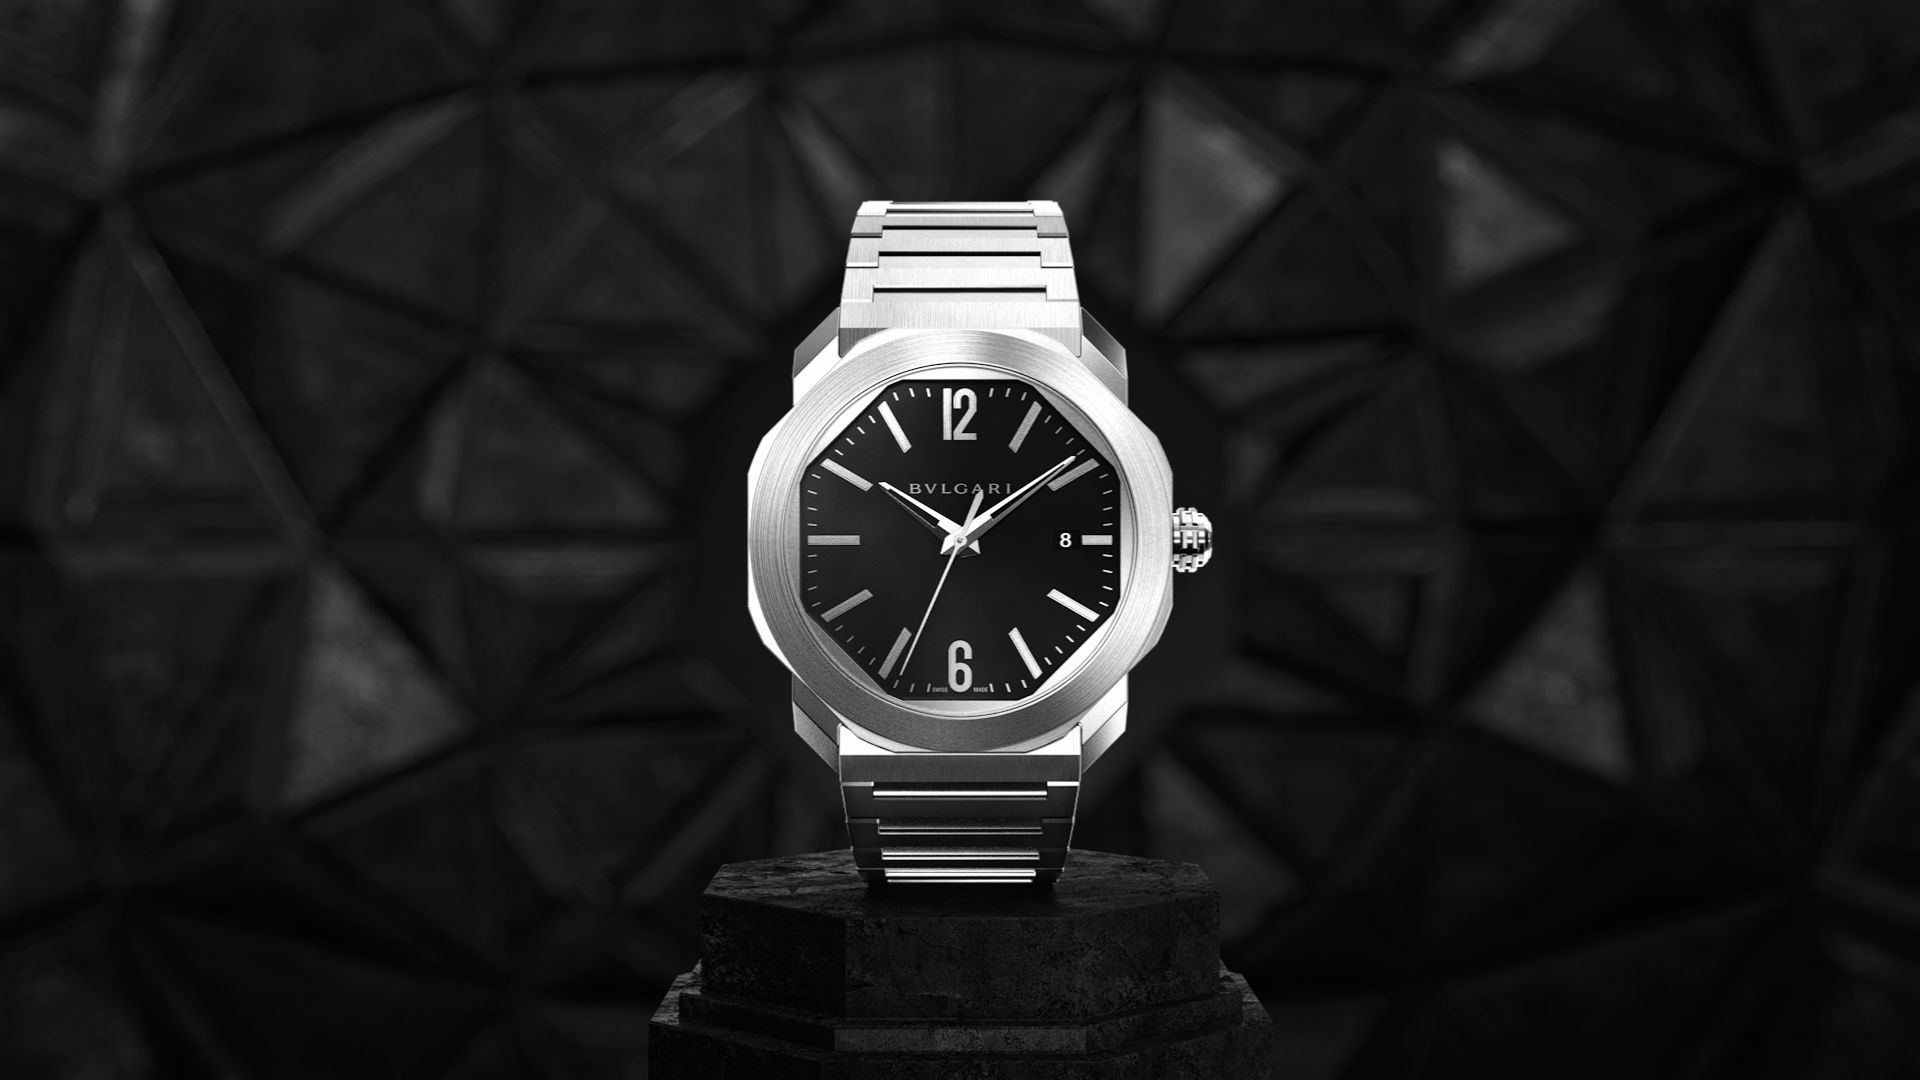 3D render of the Bulgari Octo watch in an abstract environment